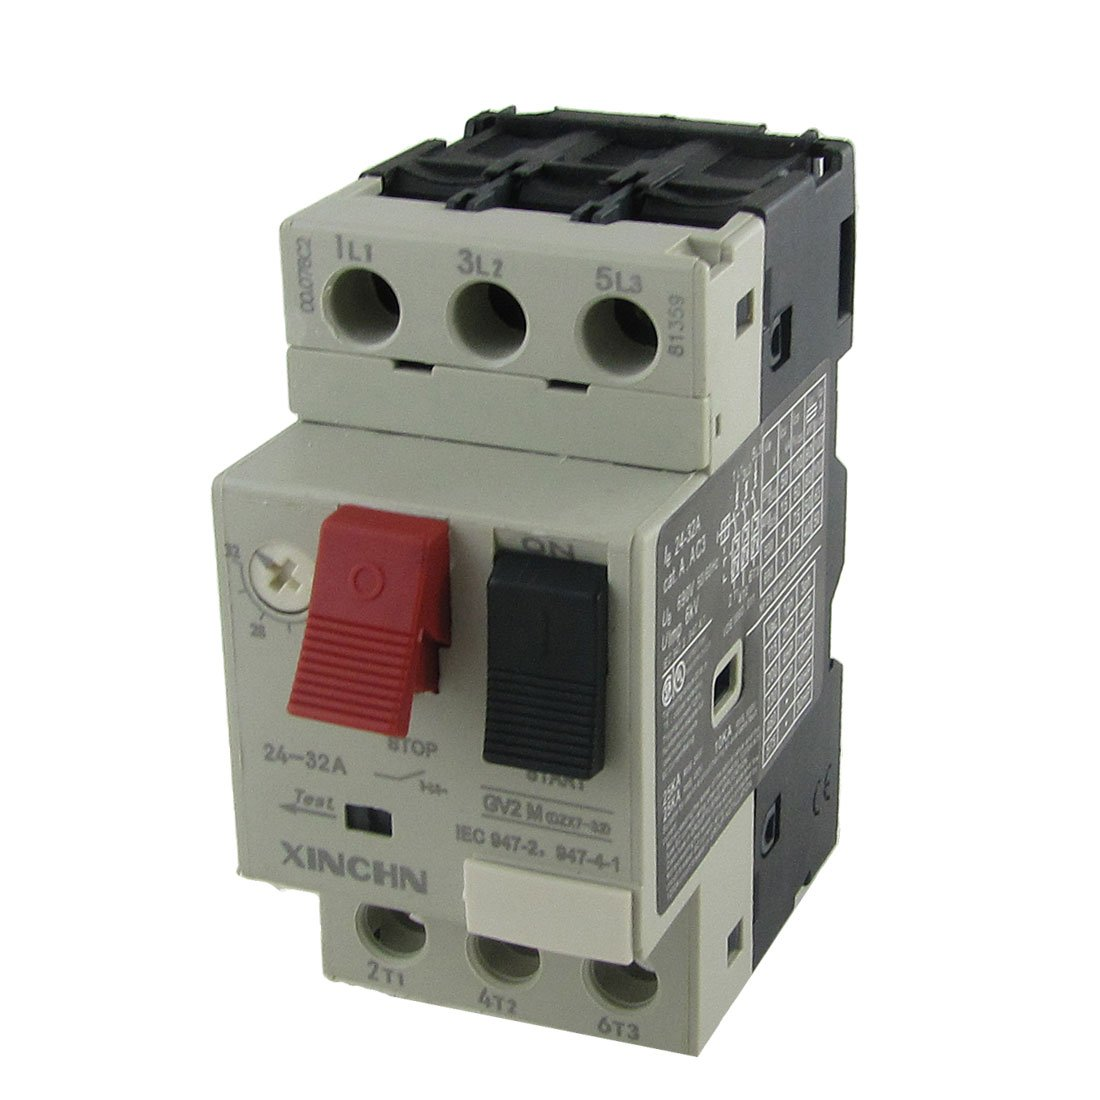 uxcell 690V 24-32A Thermal Motor Protector Circuit Breaker 3P by uxcell (Image #1)